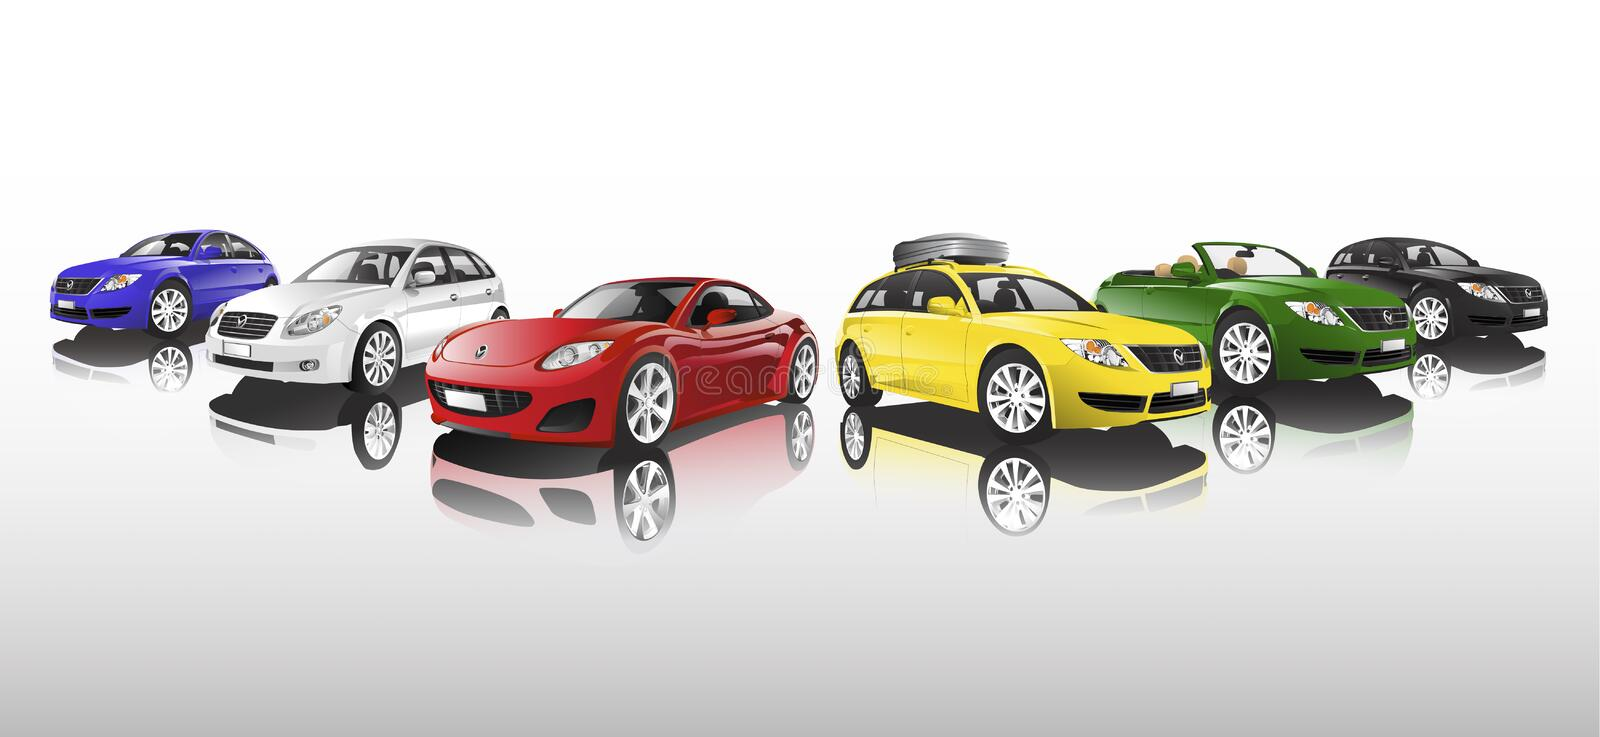 Car Collection Vector royalty free illustration